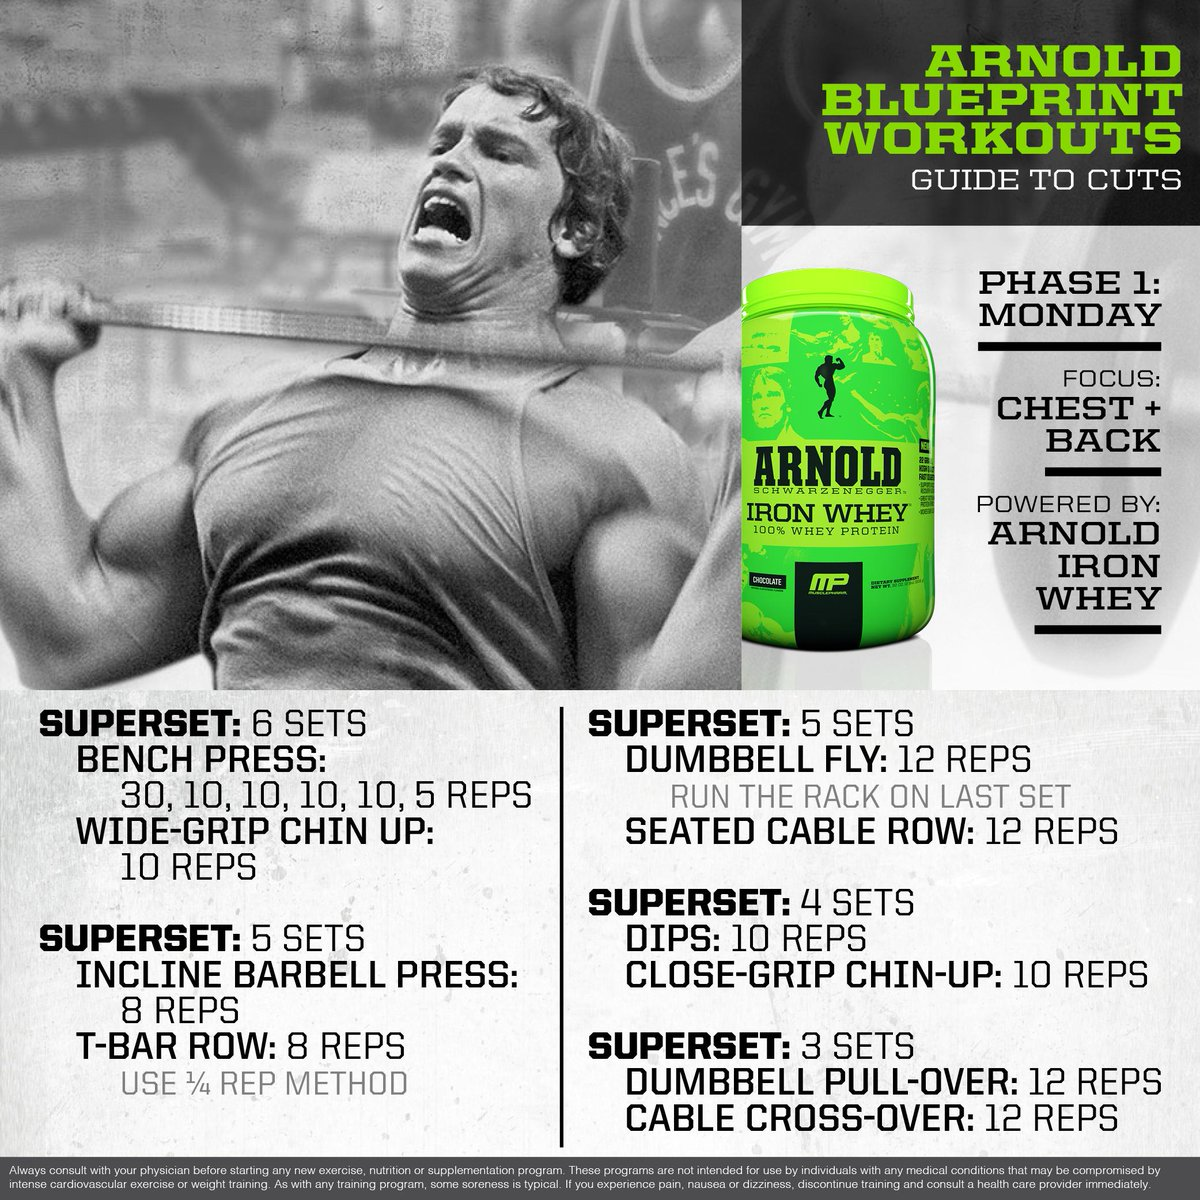 Musclepharm on twitter mp workout of the day arnold arnold schwarzenegger blueprint to cut chest and back workout powered by ironwhey httptudd1uvcjdv malvernweather